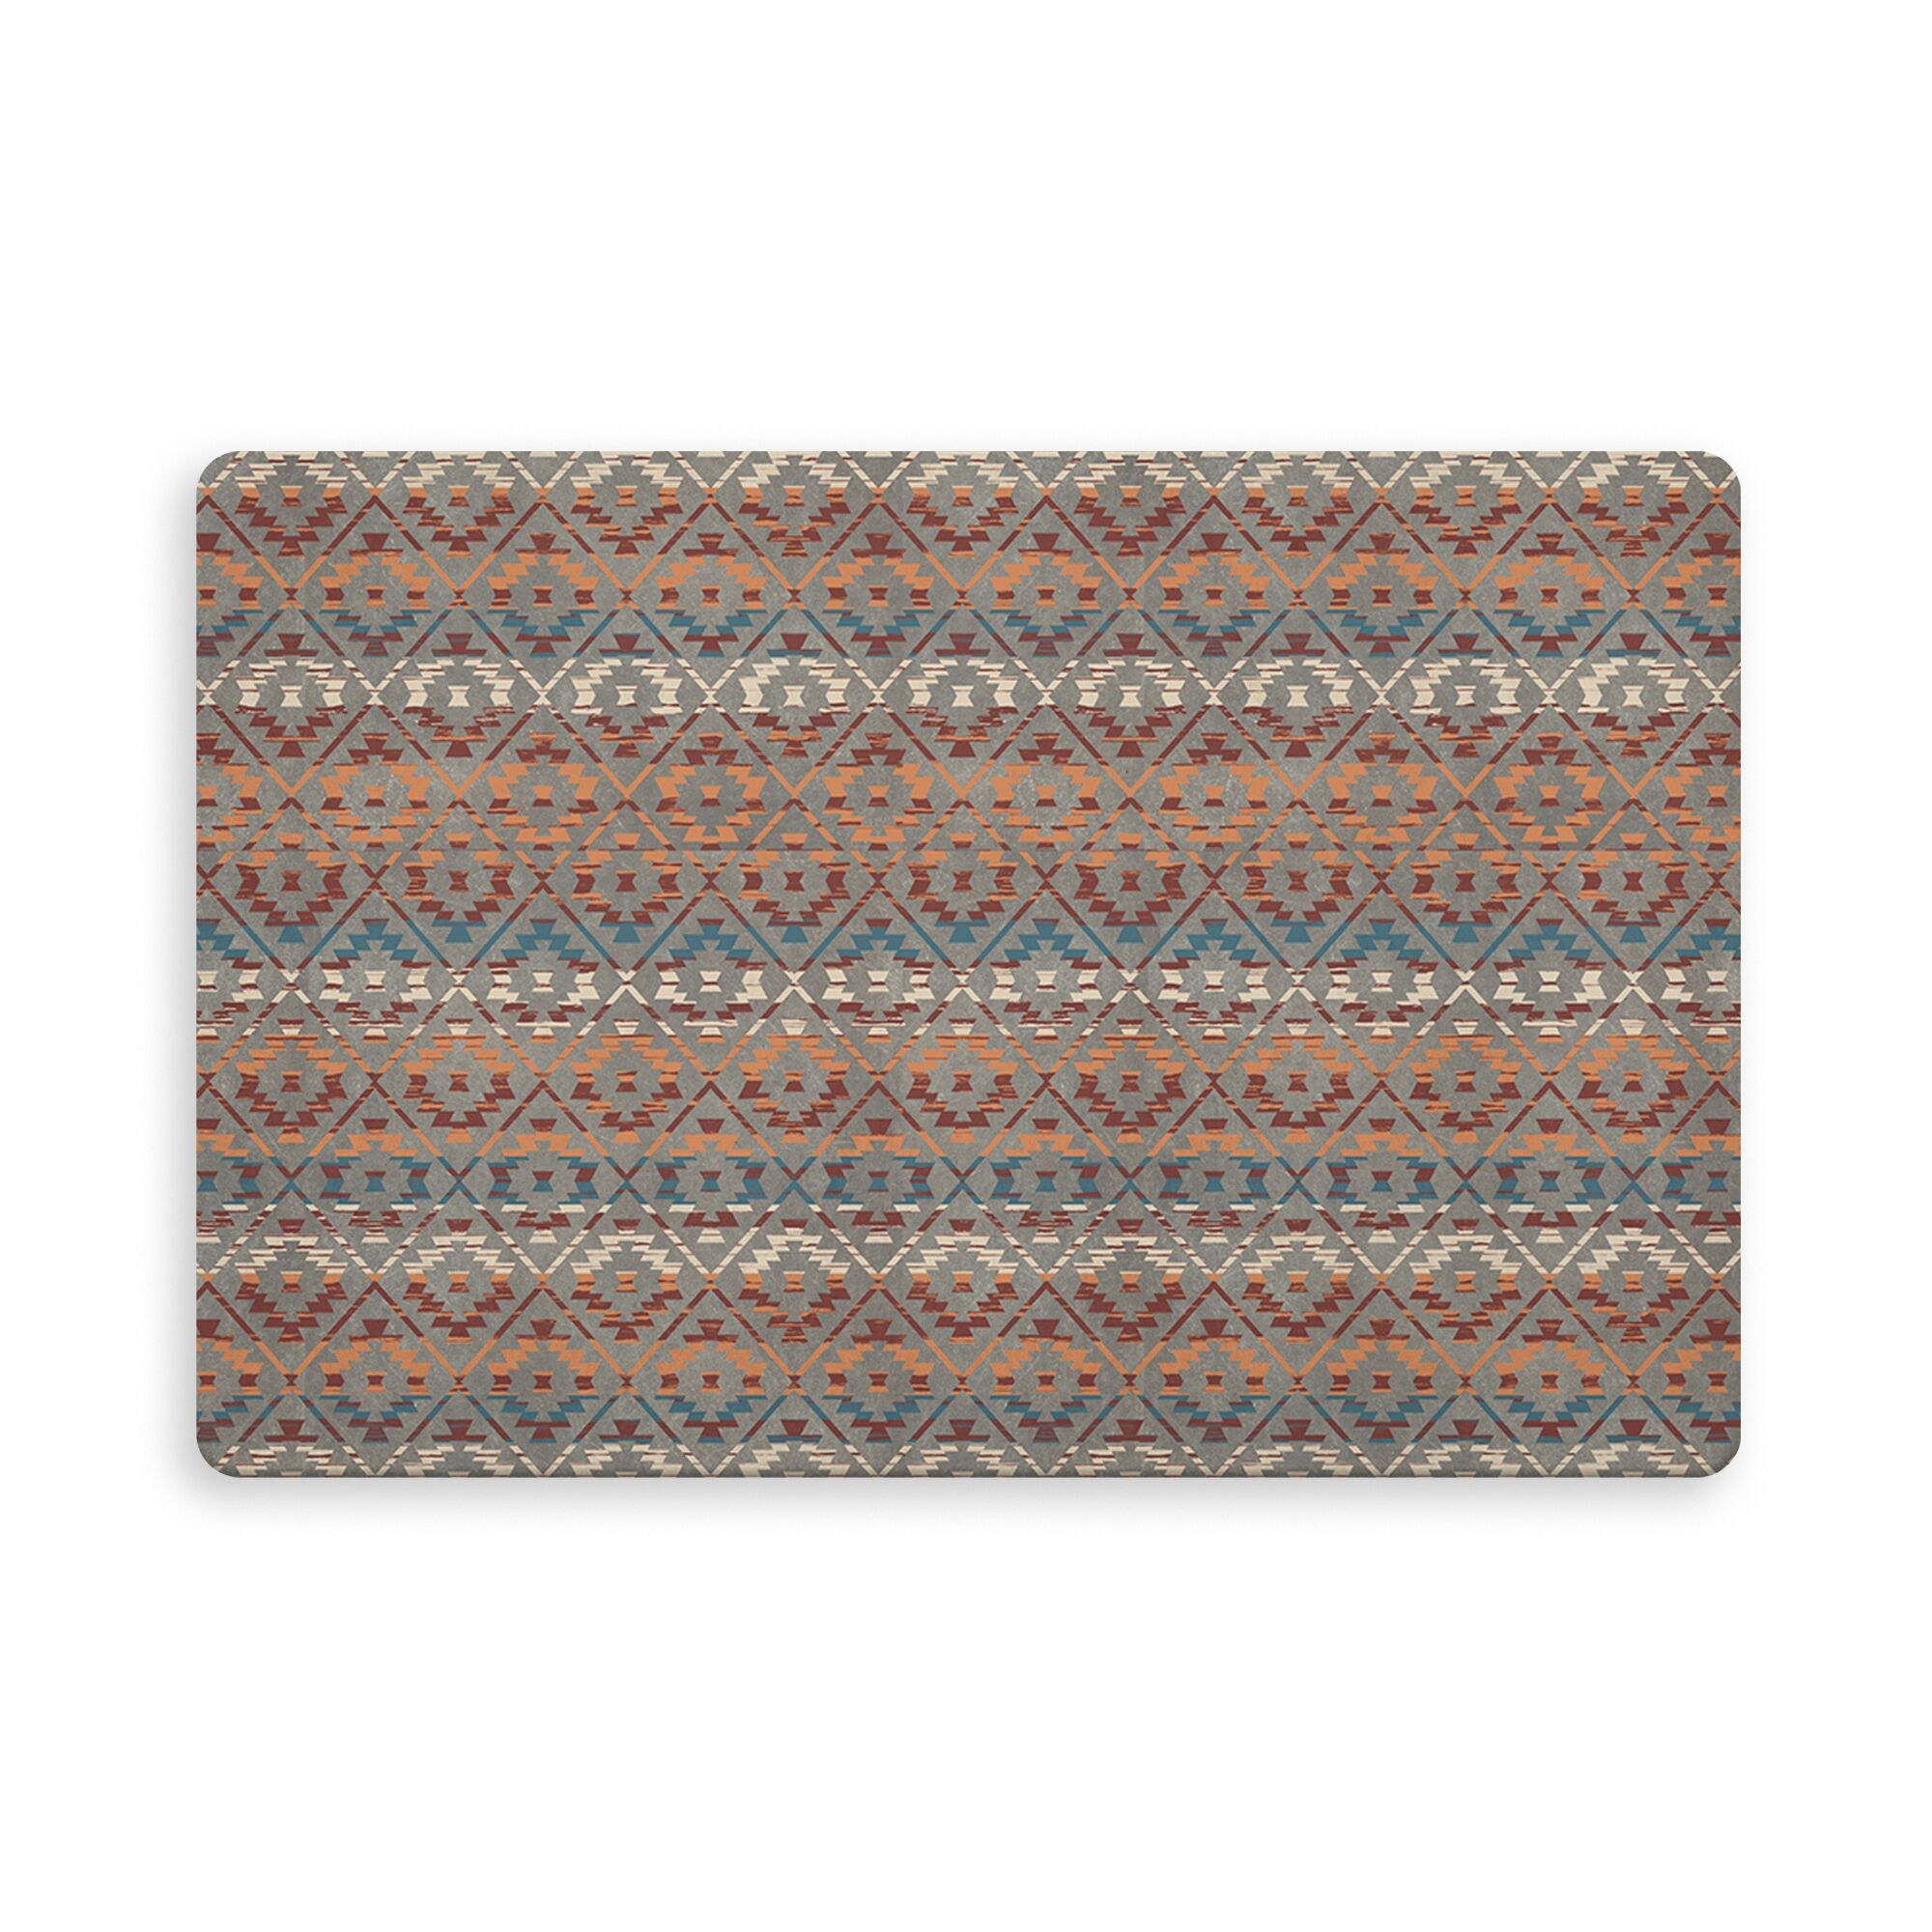 Cedric Kitchen Mat Color: Charcoal, Mat Size: Rectangle 2'7